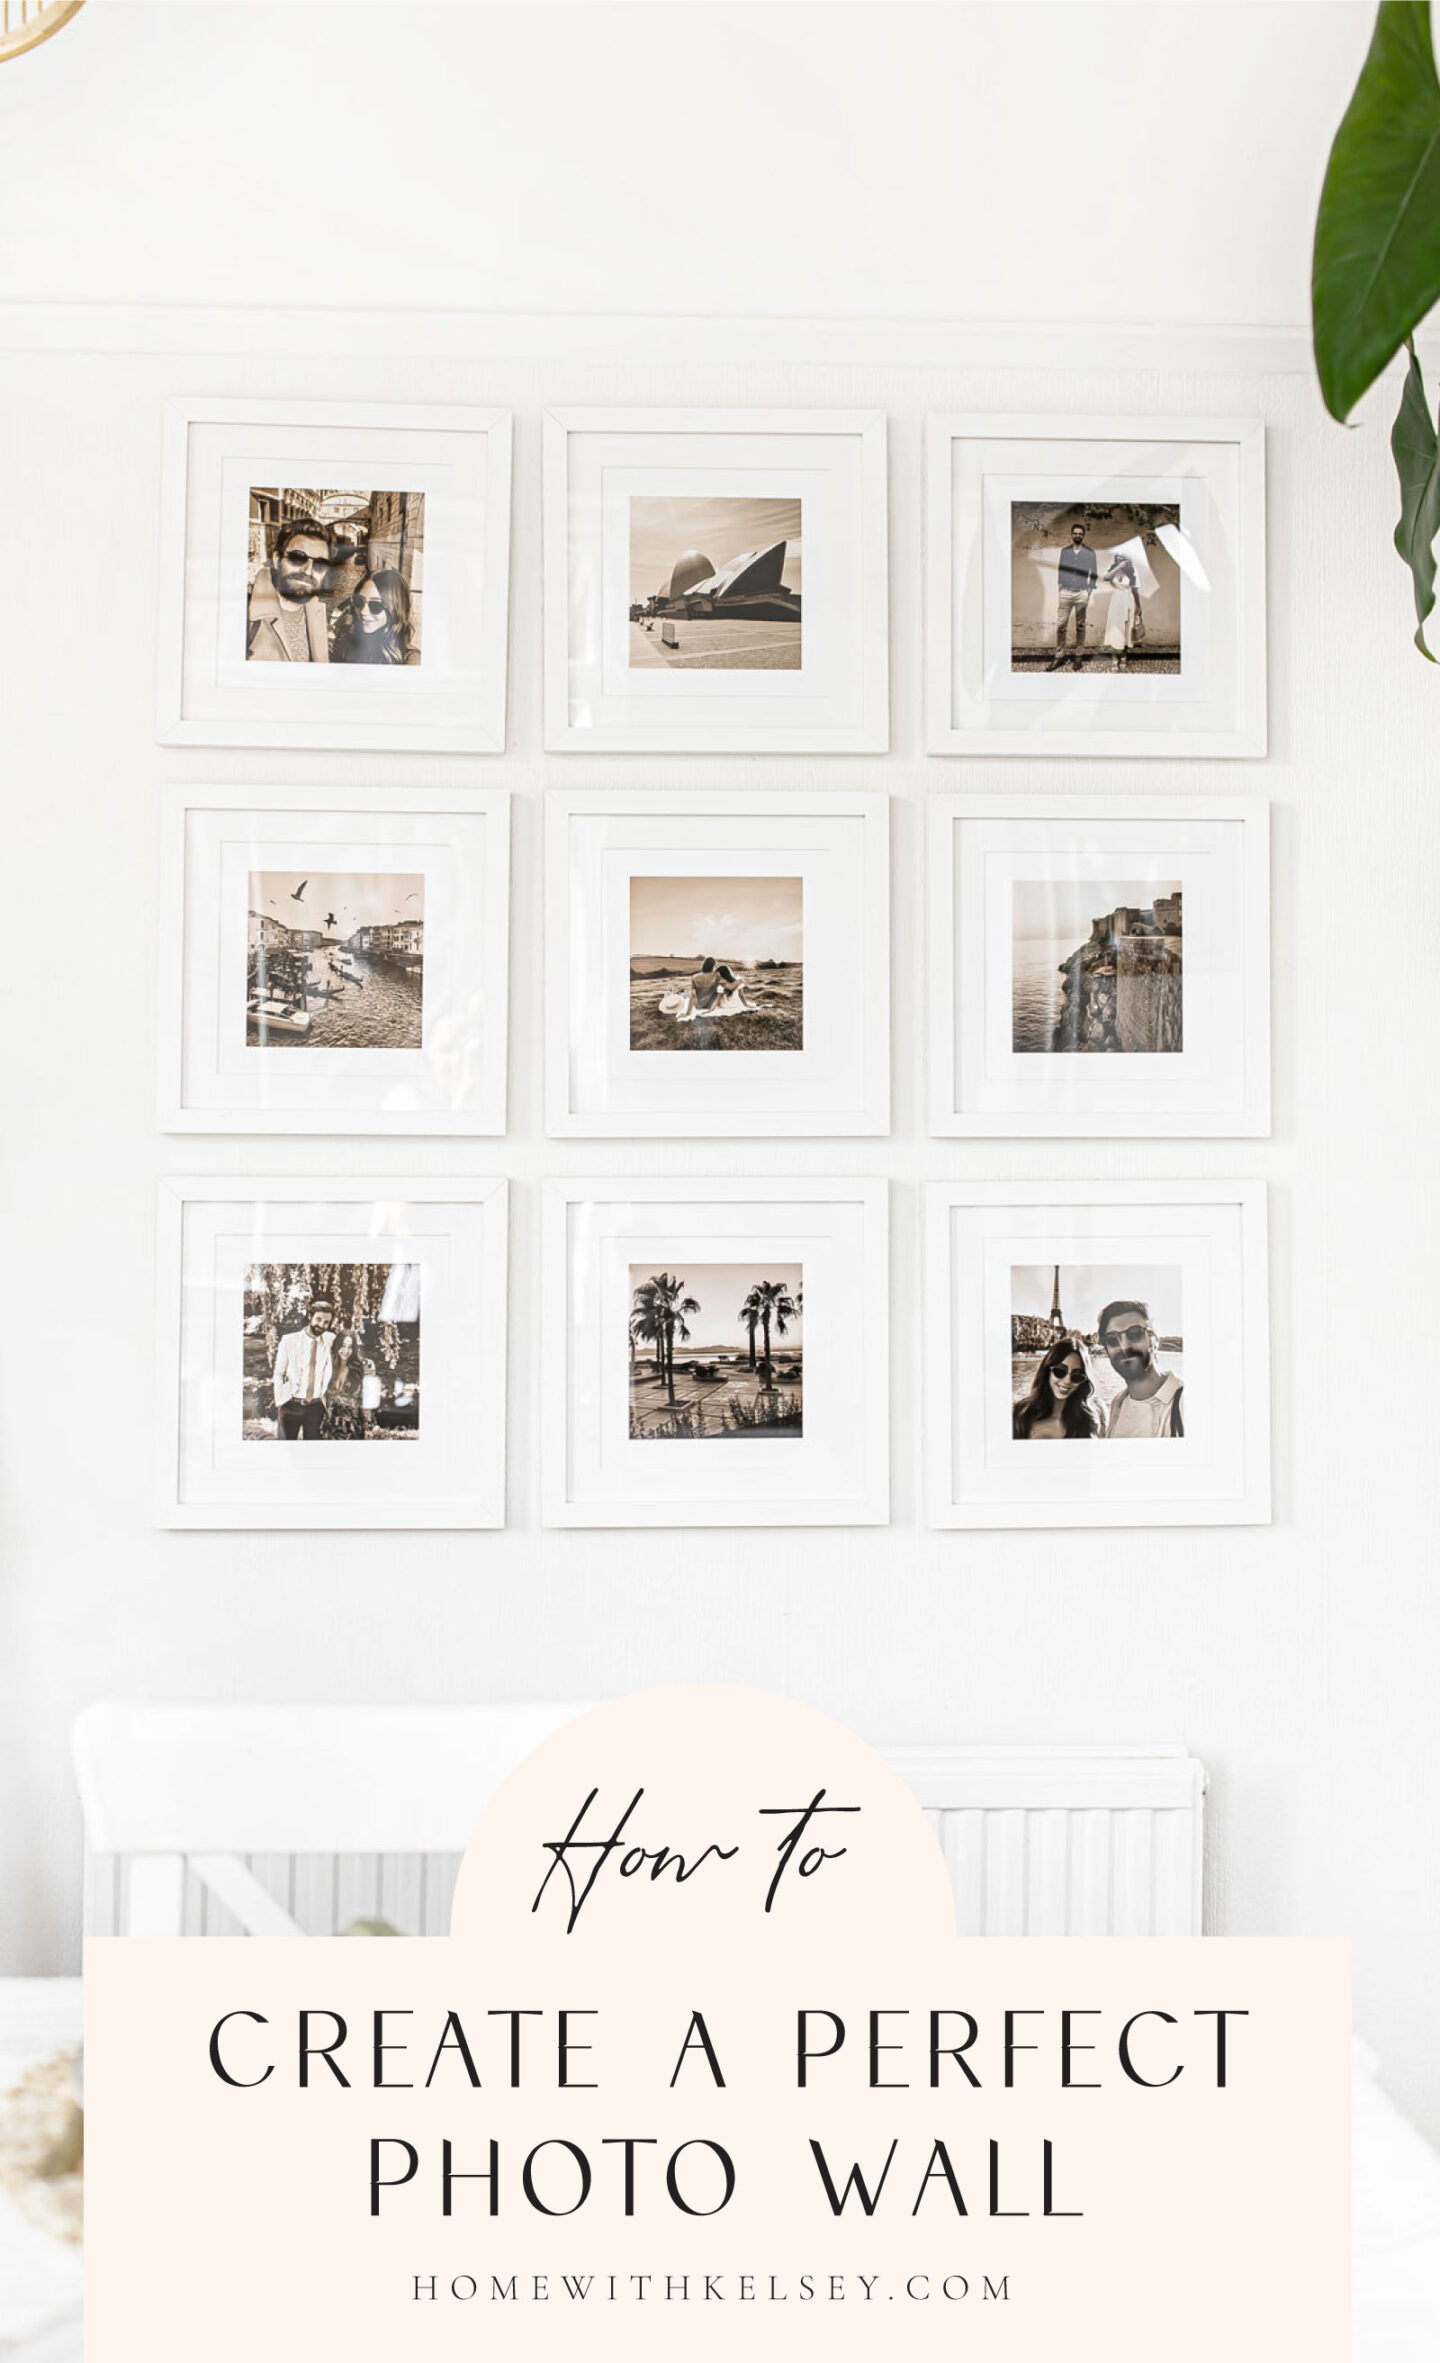 photo-wall-gallery-wall-homewithkelsey-photo-prints-cewe-photoworld